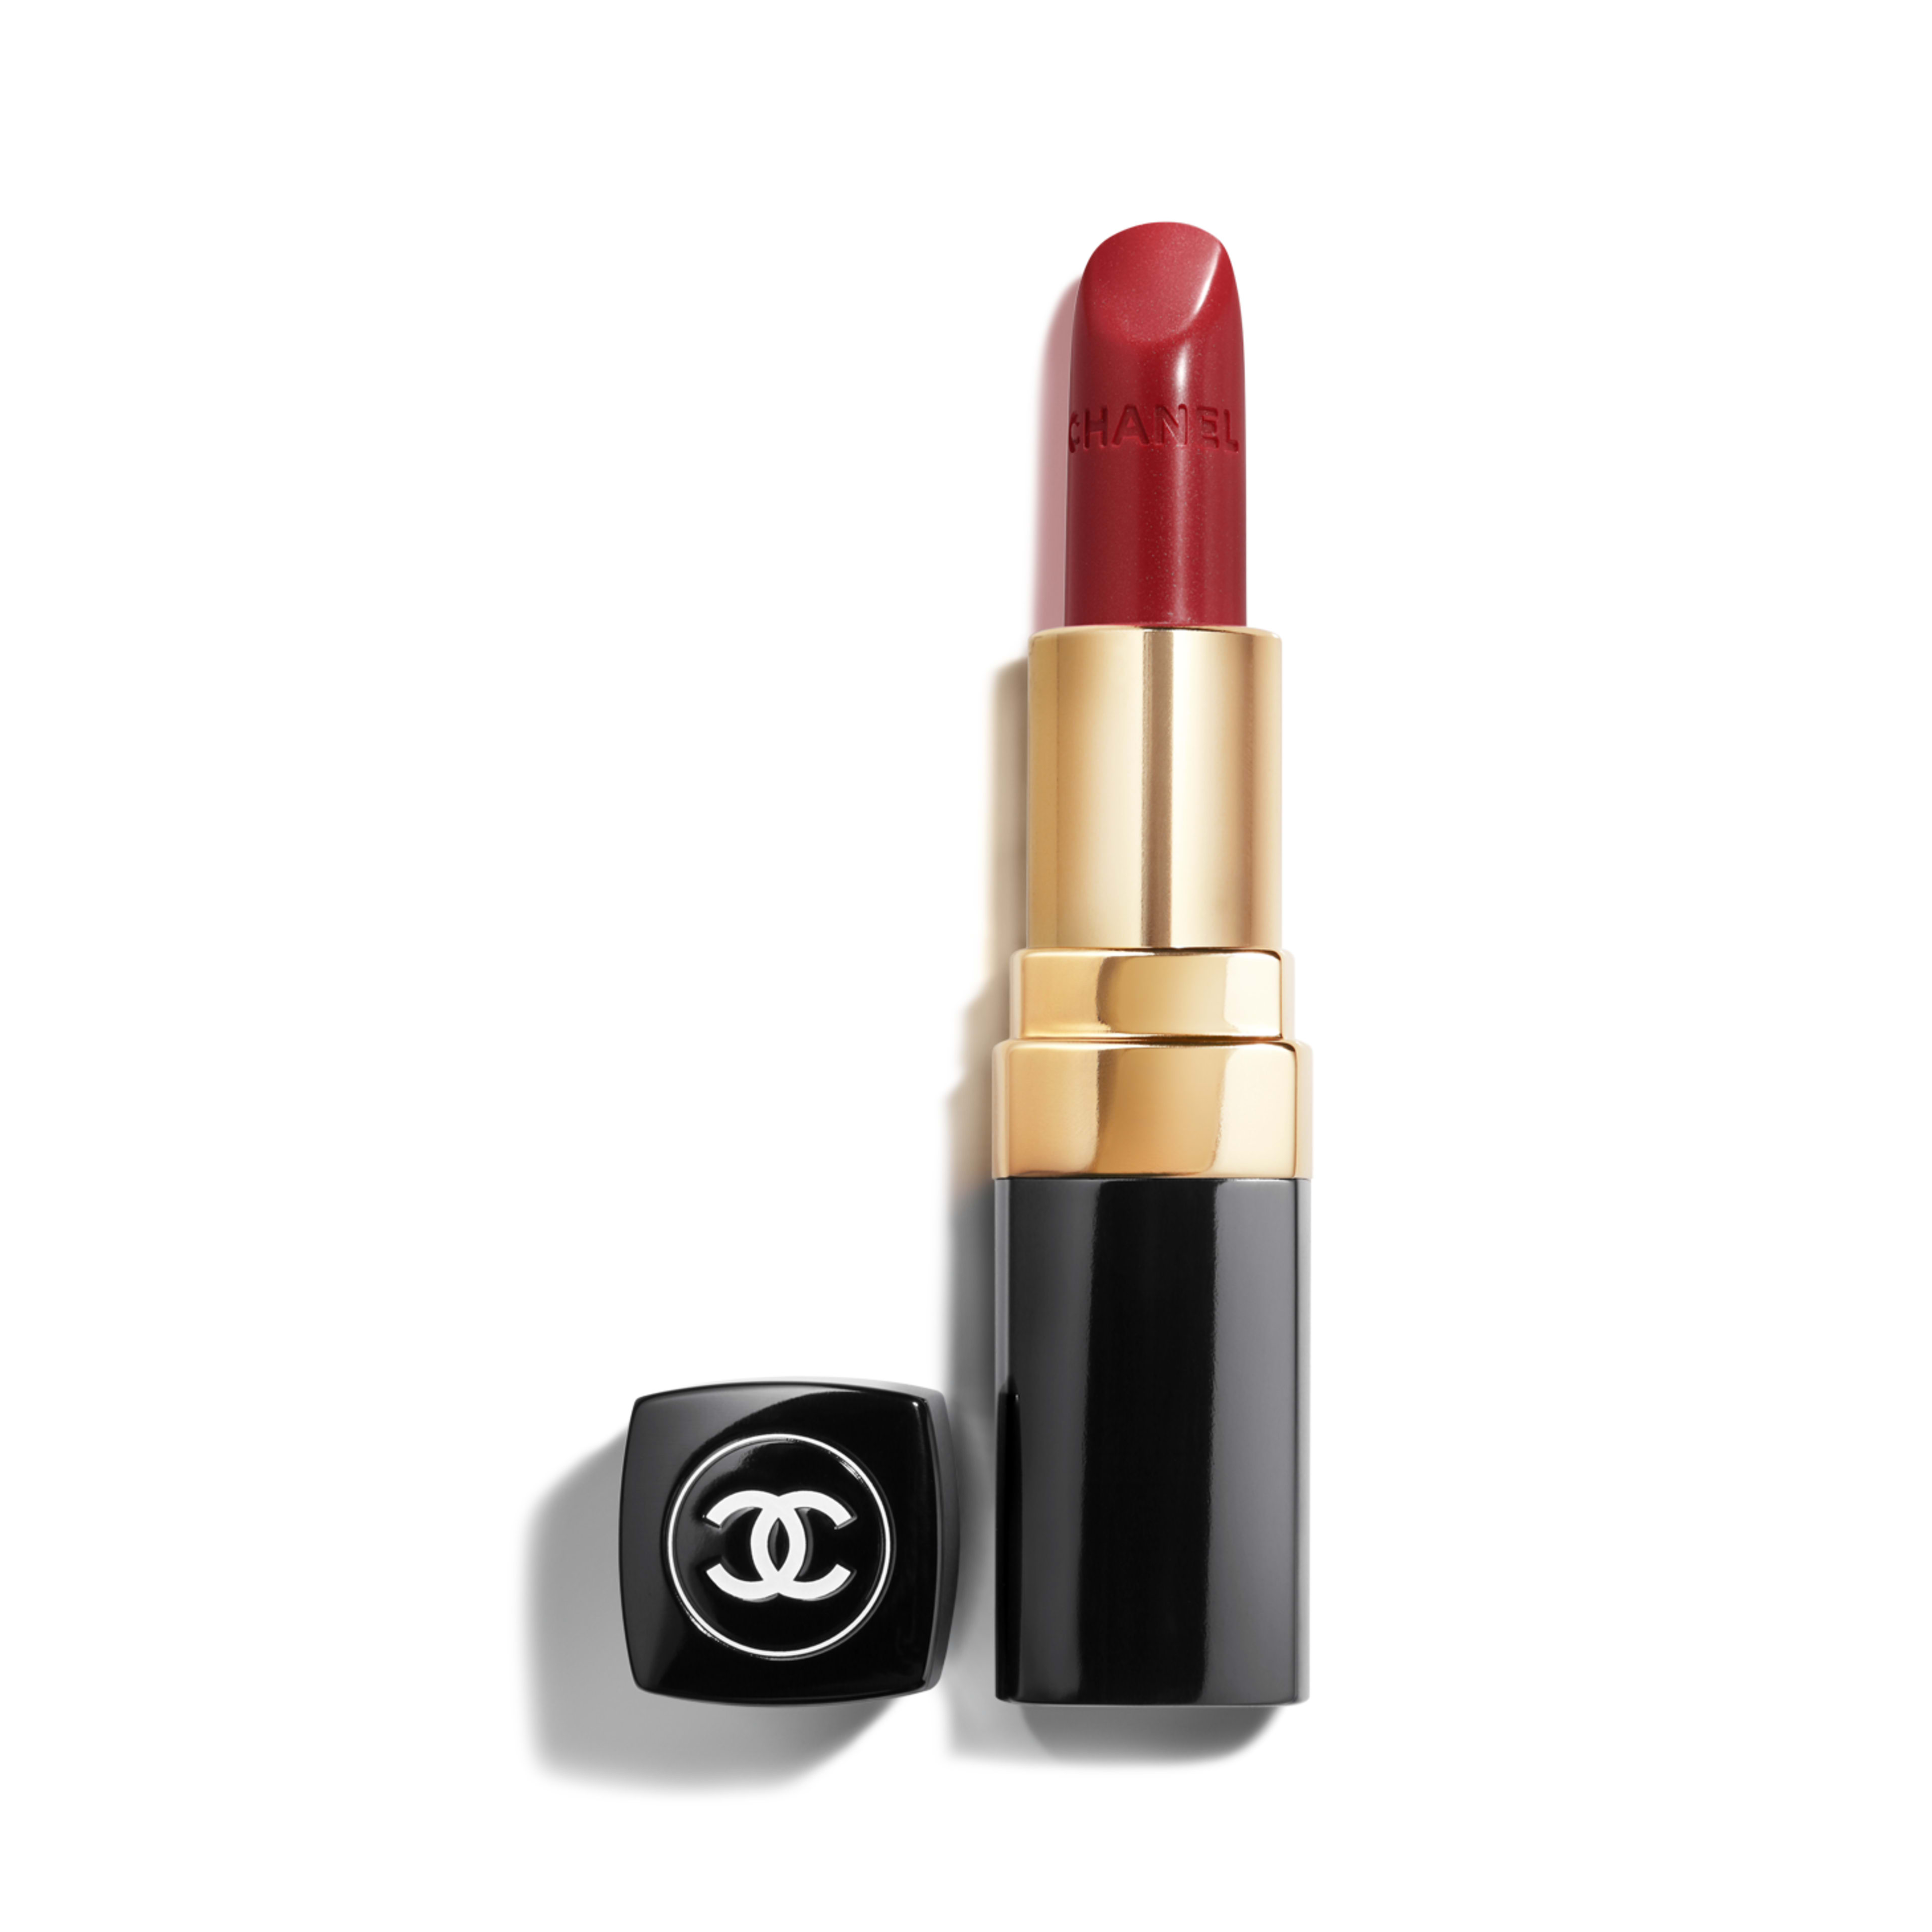 rouge coco mademoiselle